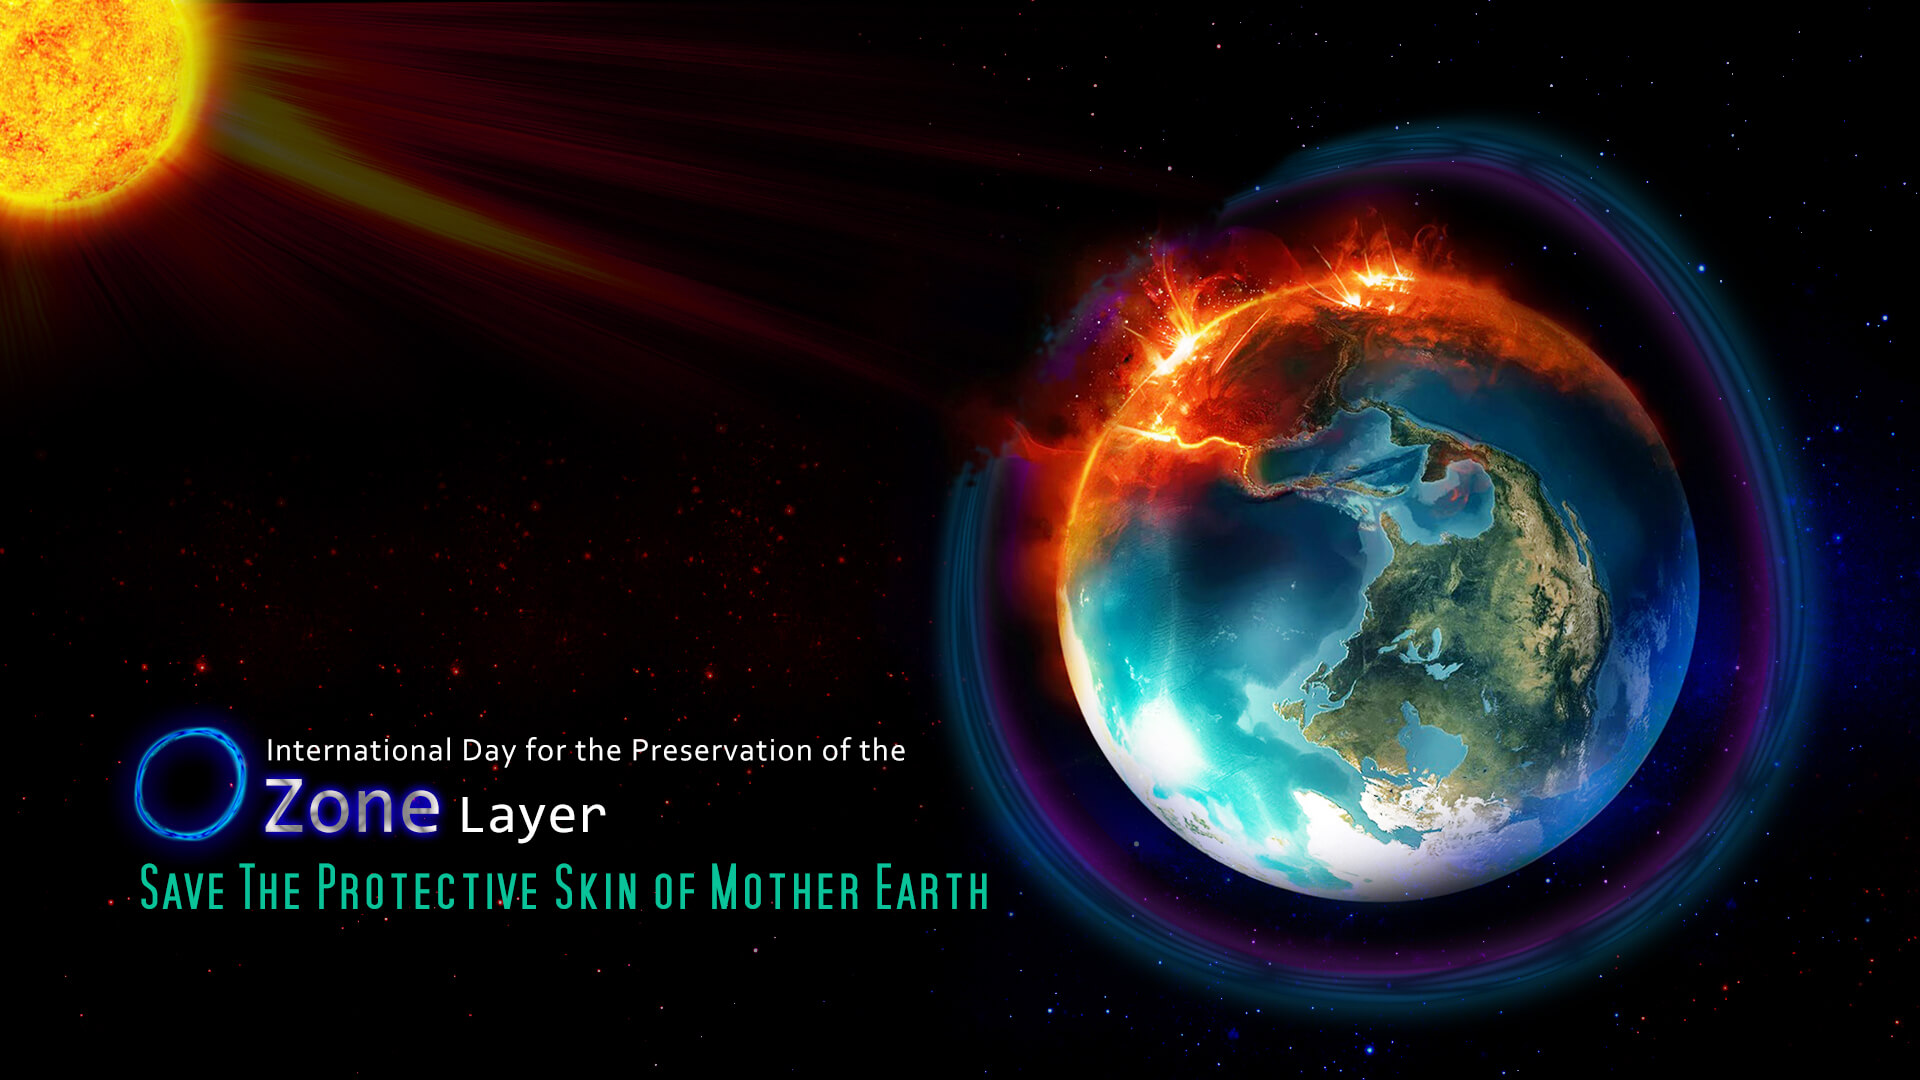 ozone day layer protection prevention awareness save earth wallpaper